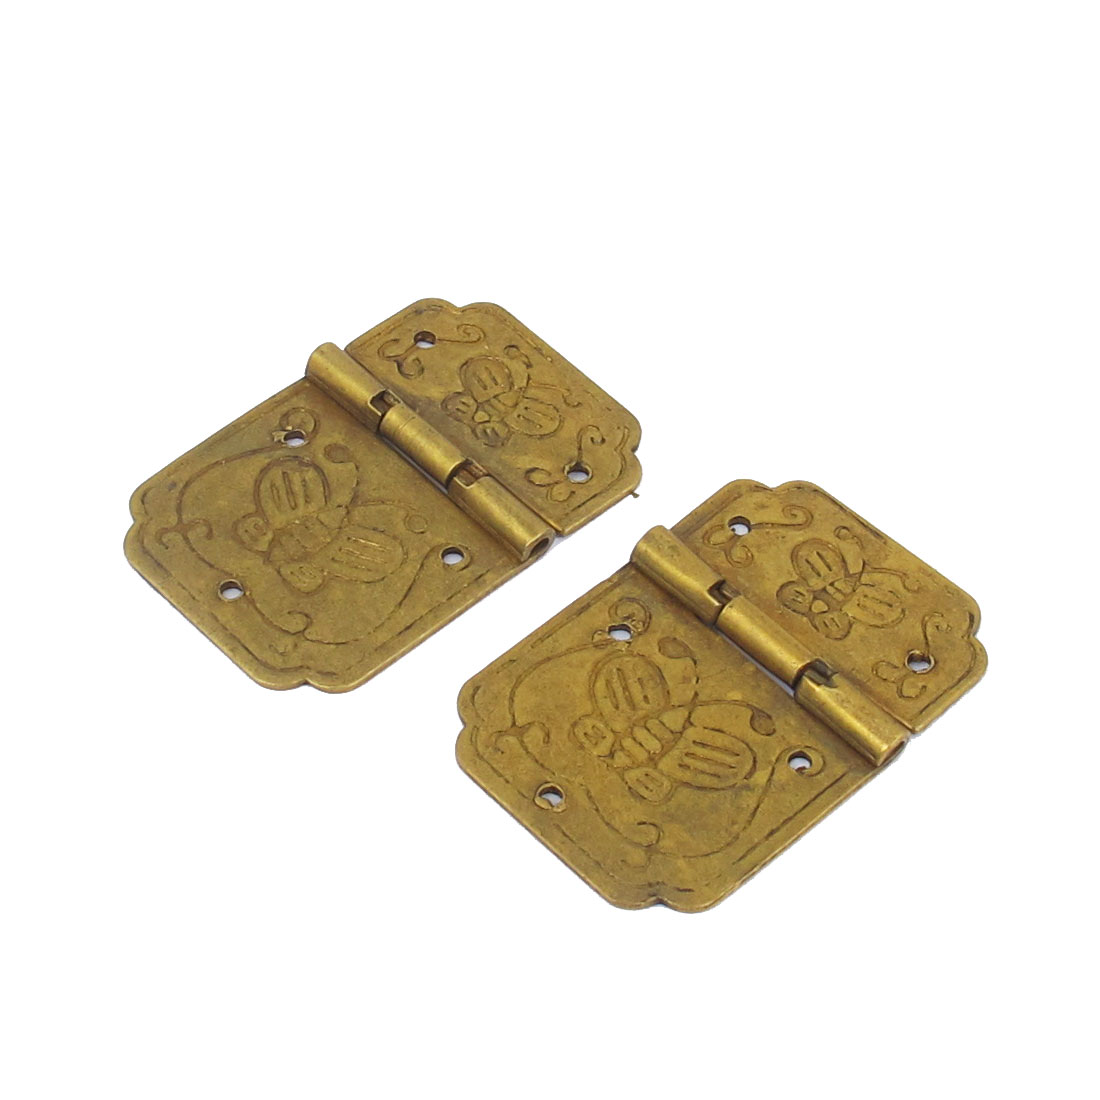 "1.3"" Length Jewelry Case Wooden Box Door Butt Hinges Hardware Yellow 2pcs"